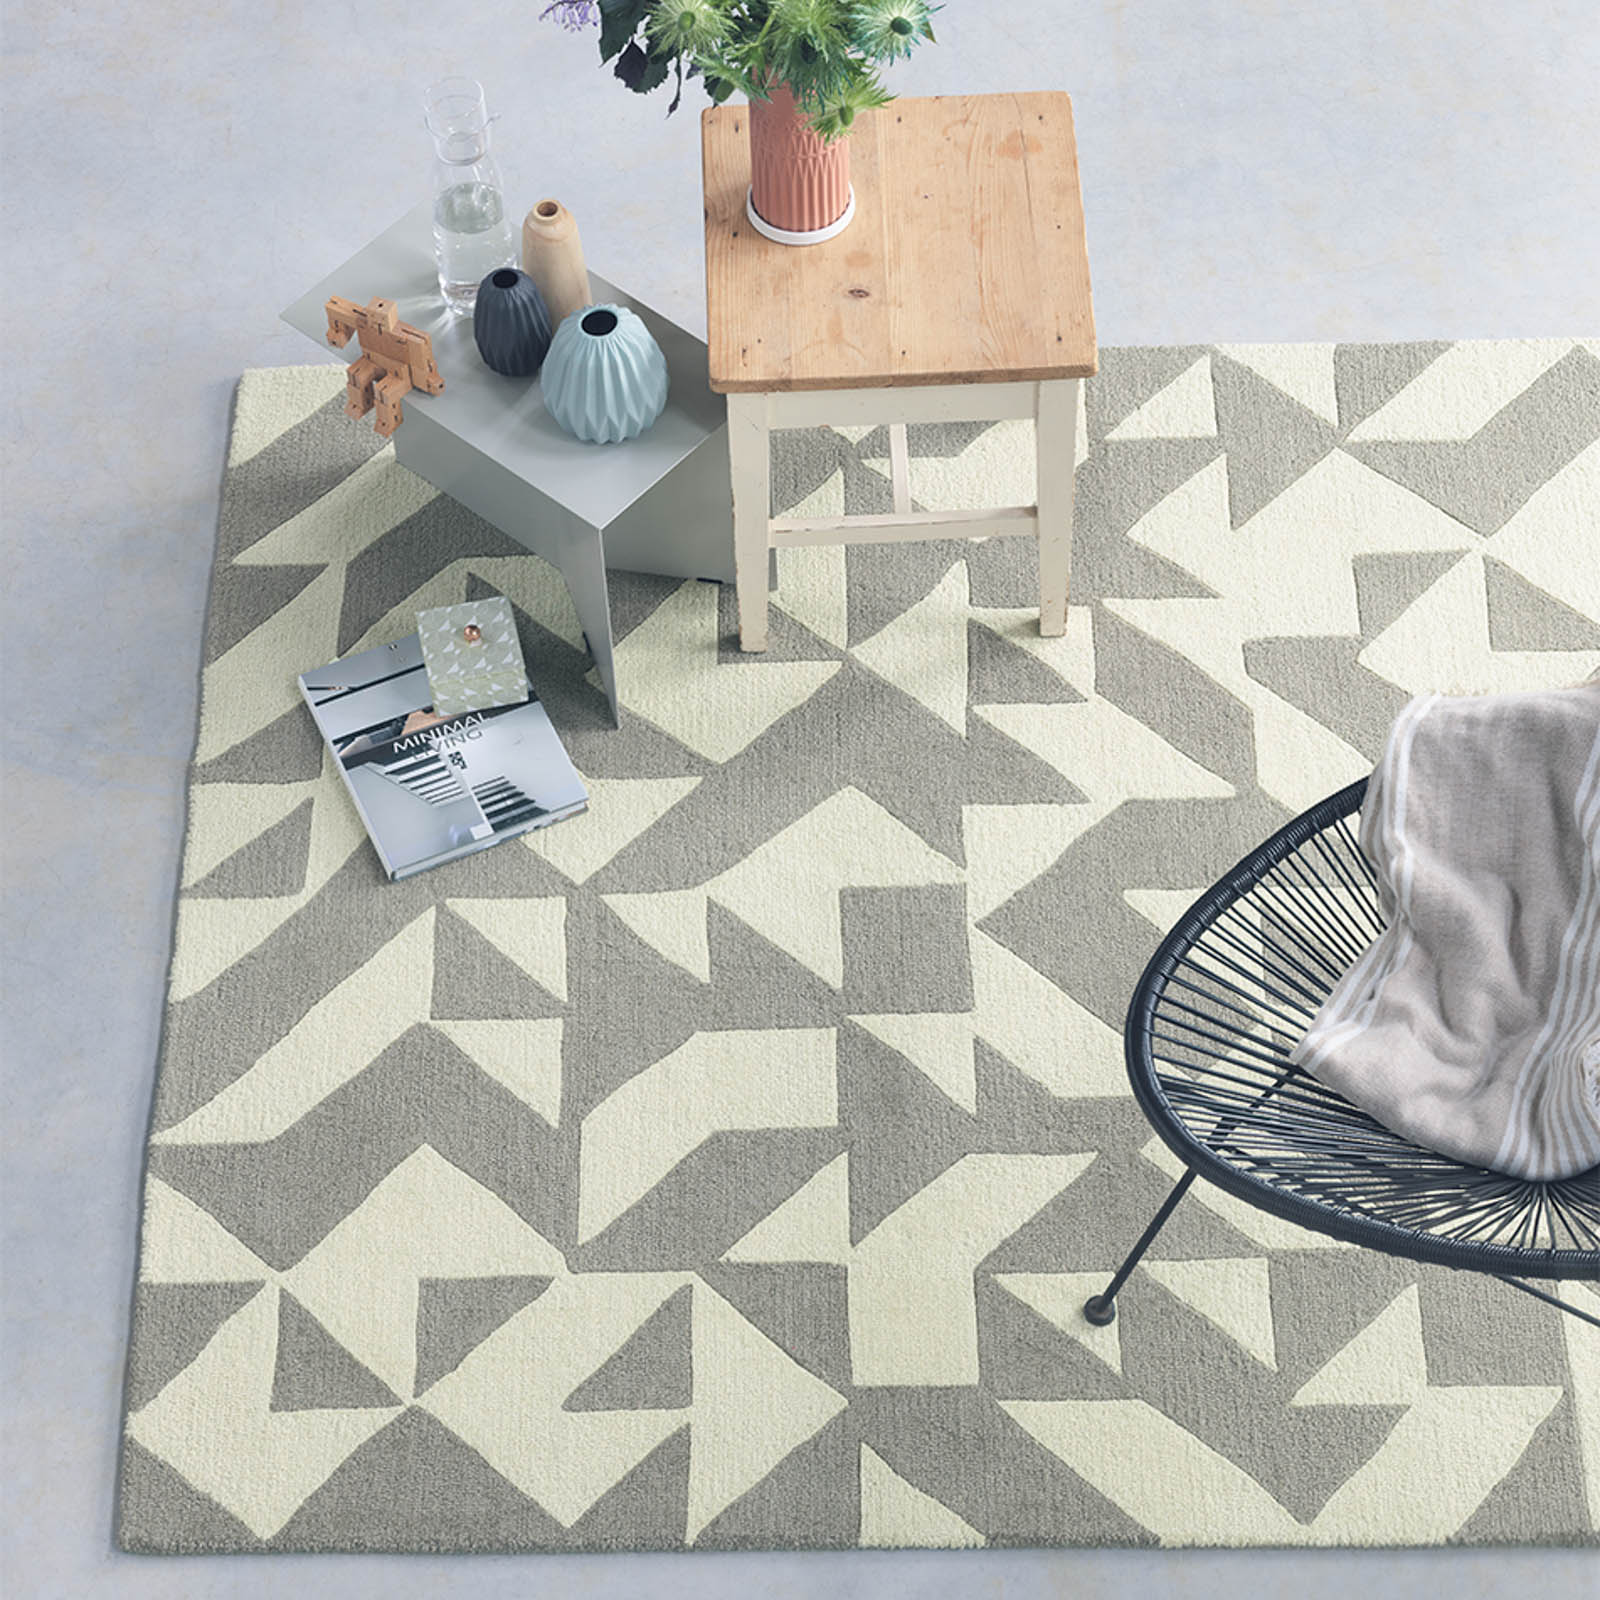 Nova Origami Rugs 89001 in Taupe and Cream by Brink and Campman